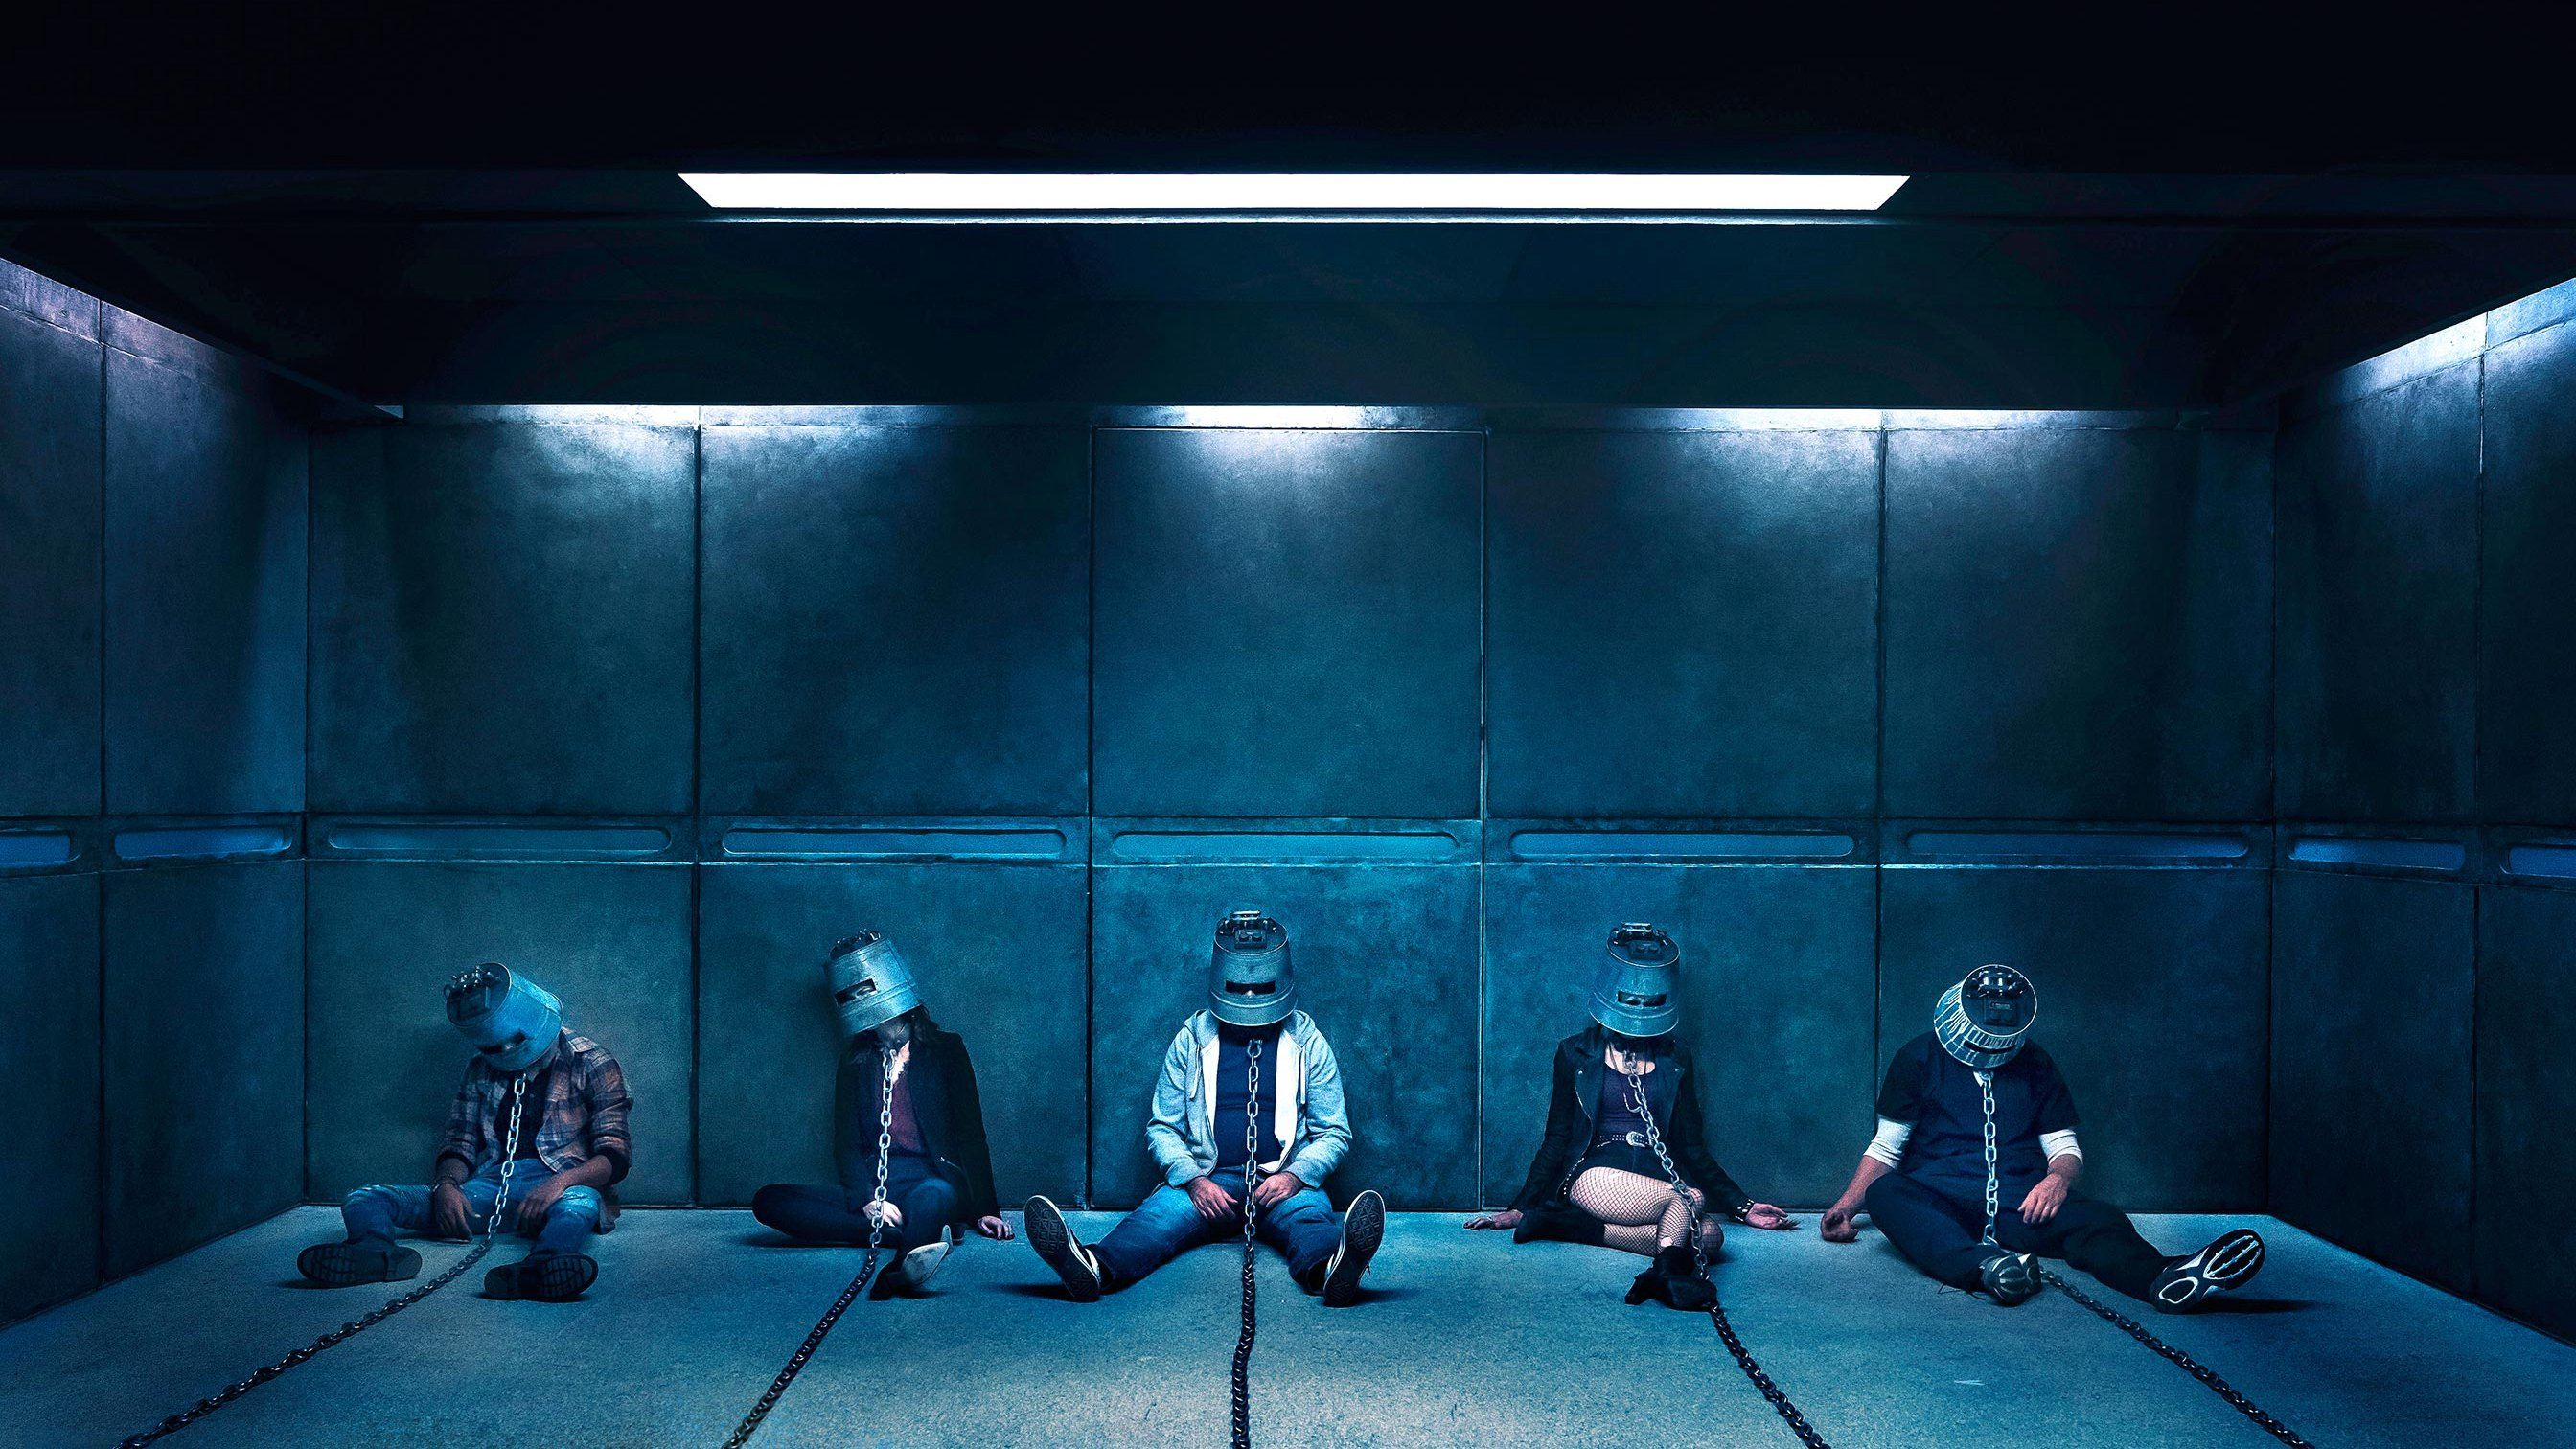 Five people wearing helmets and chains sit in a cell.